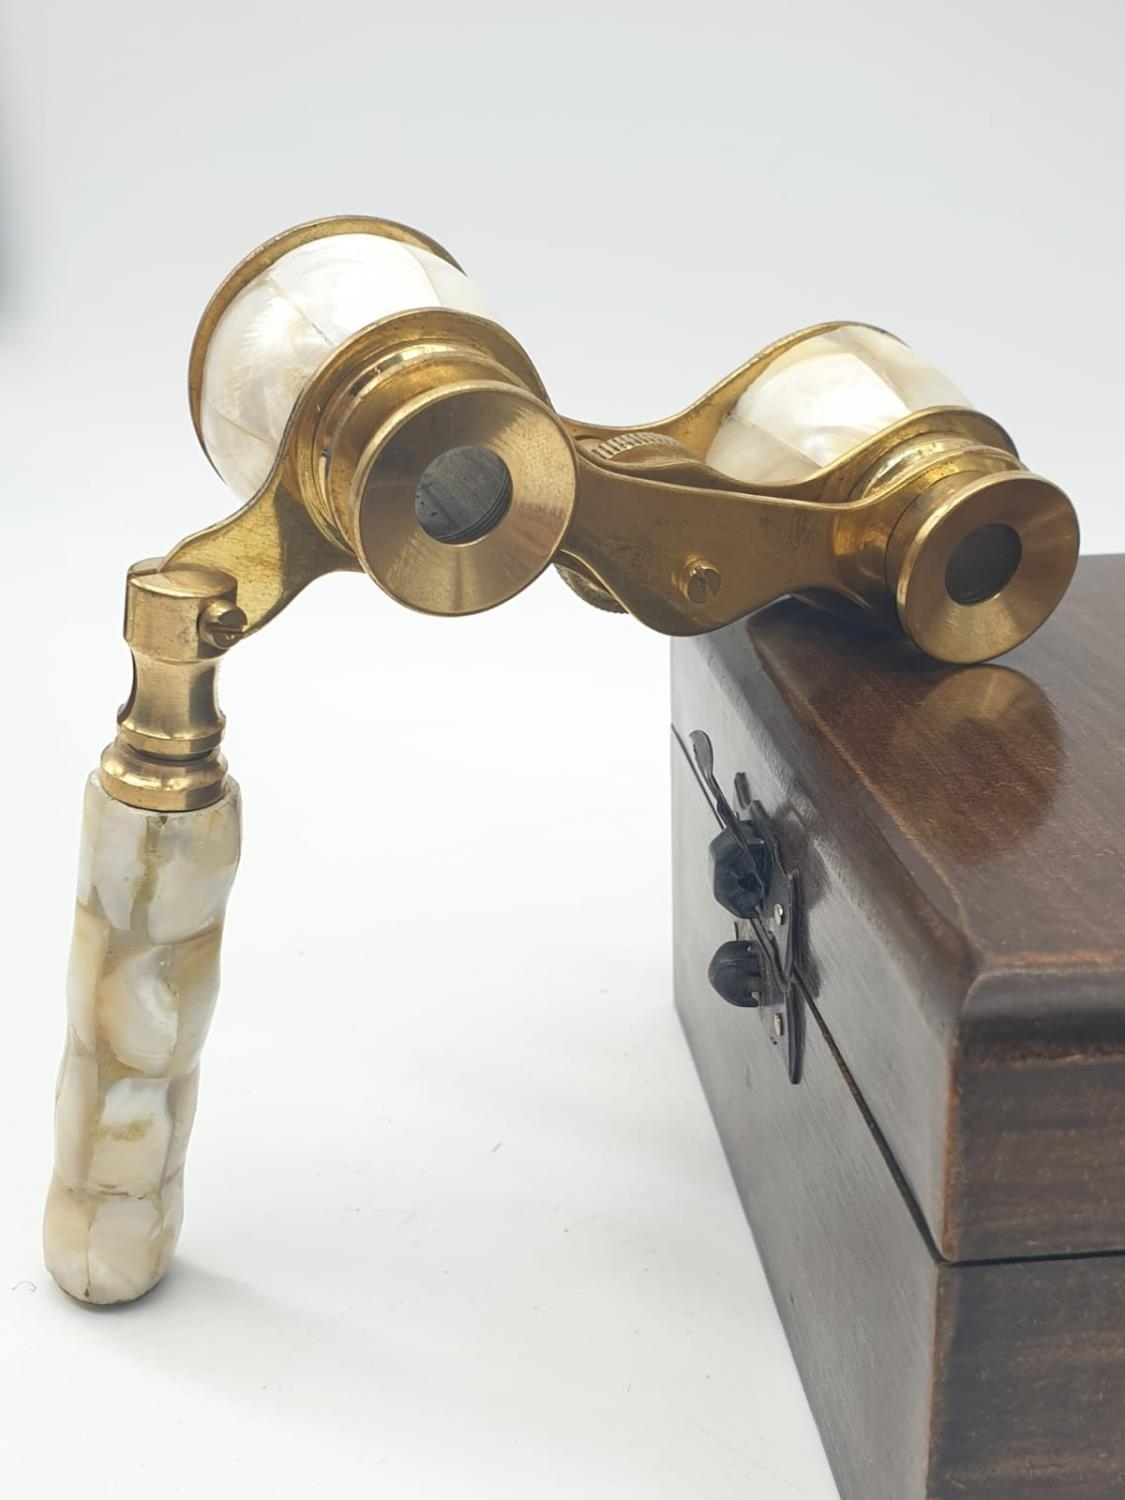 1920's Mother of Pearl & Brass opera glasses with folding handle, in wooden box. 13x7cm. - Image 5 of 9